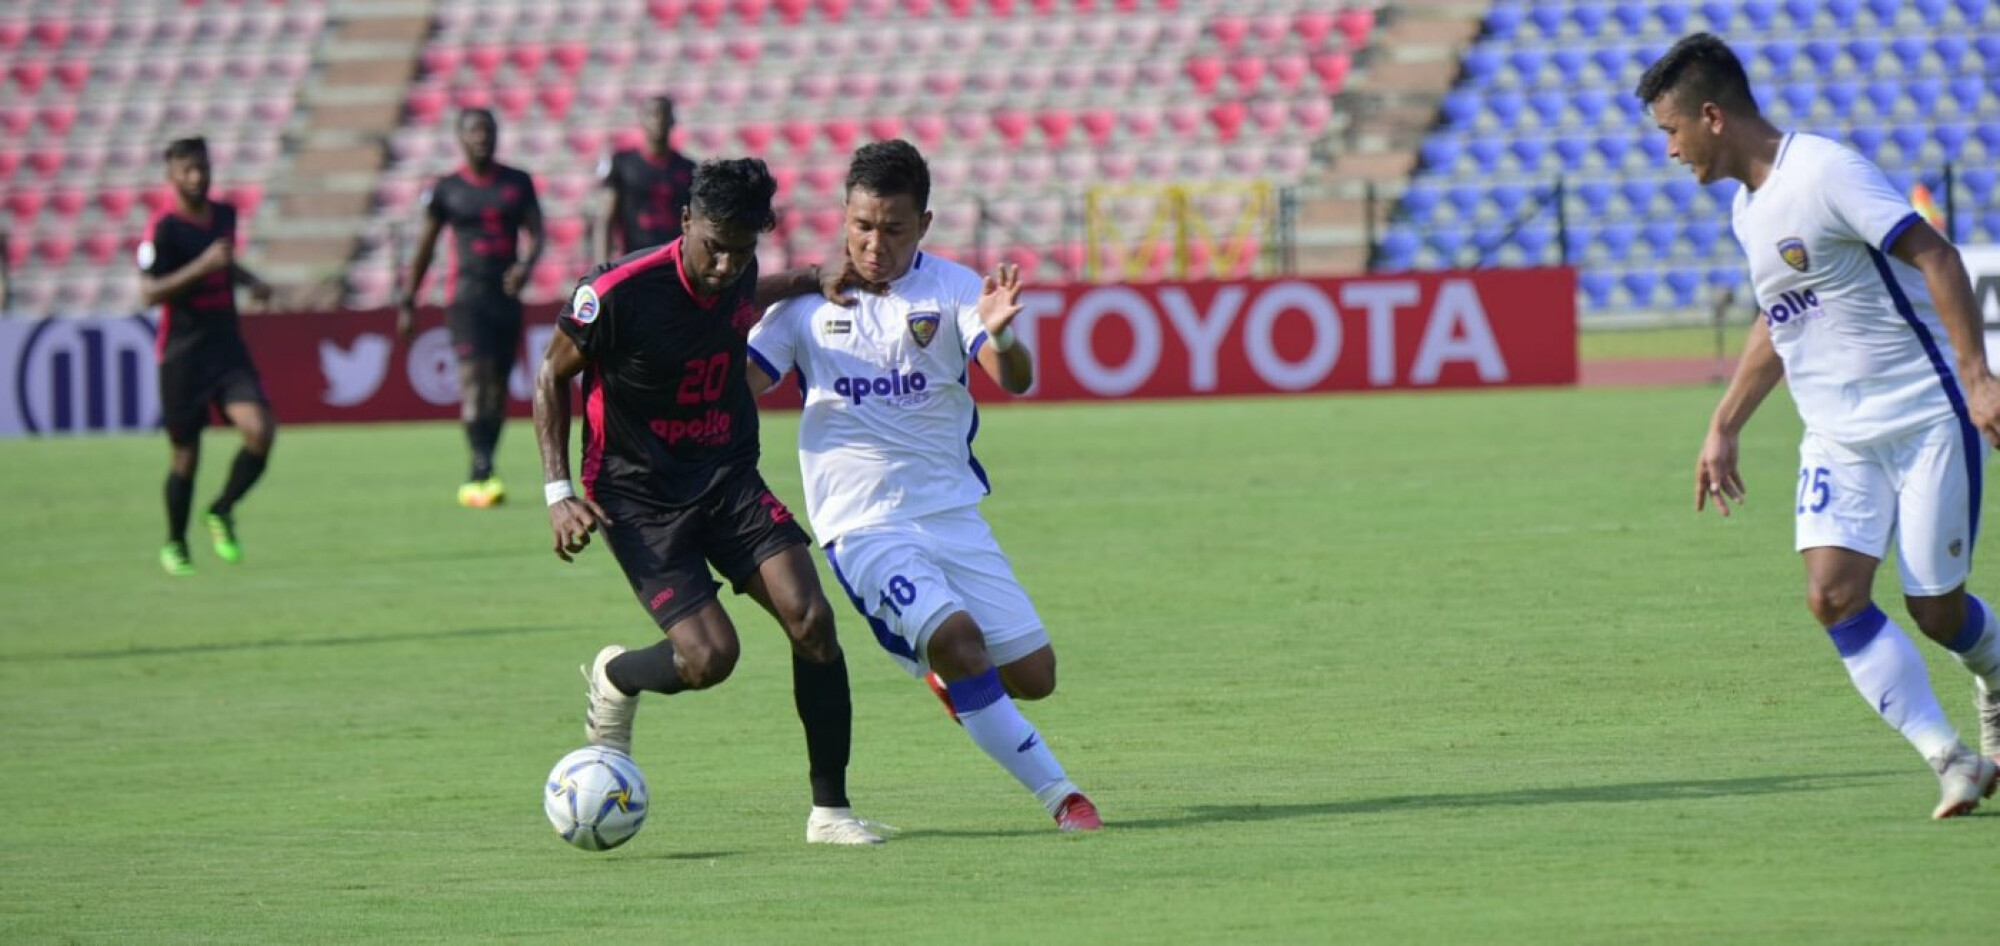 AFC Cup 2019: What equation will get Chennaiyin to the next round?